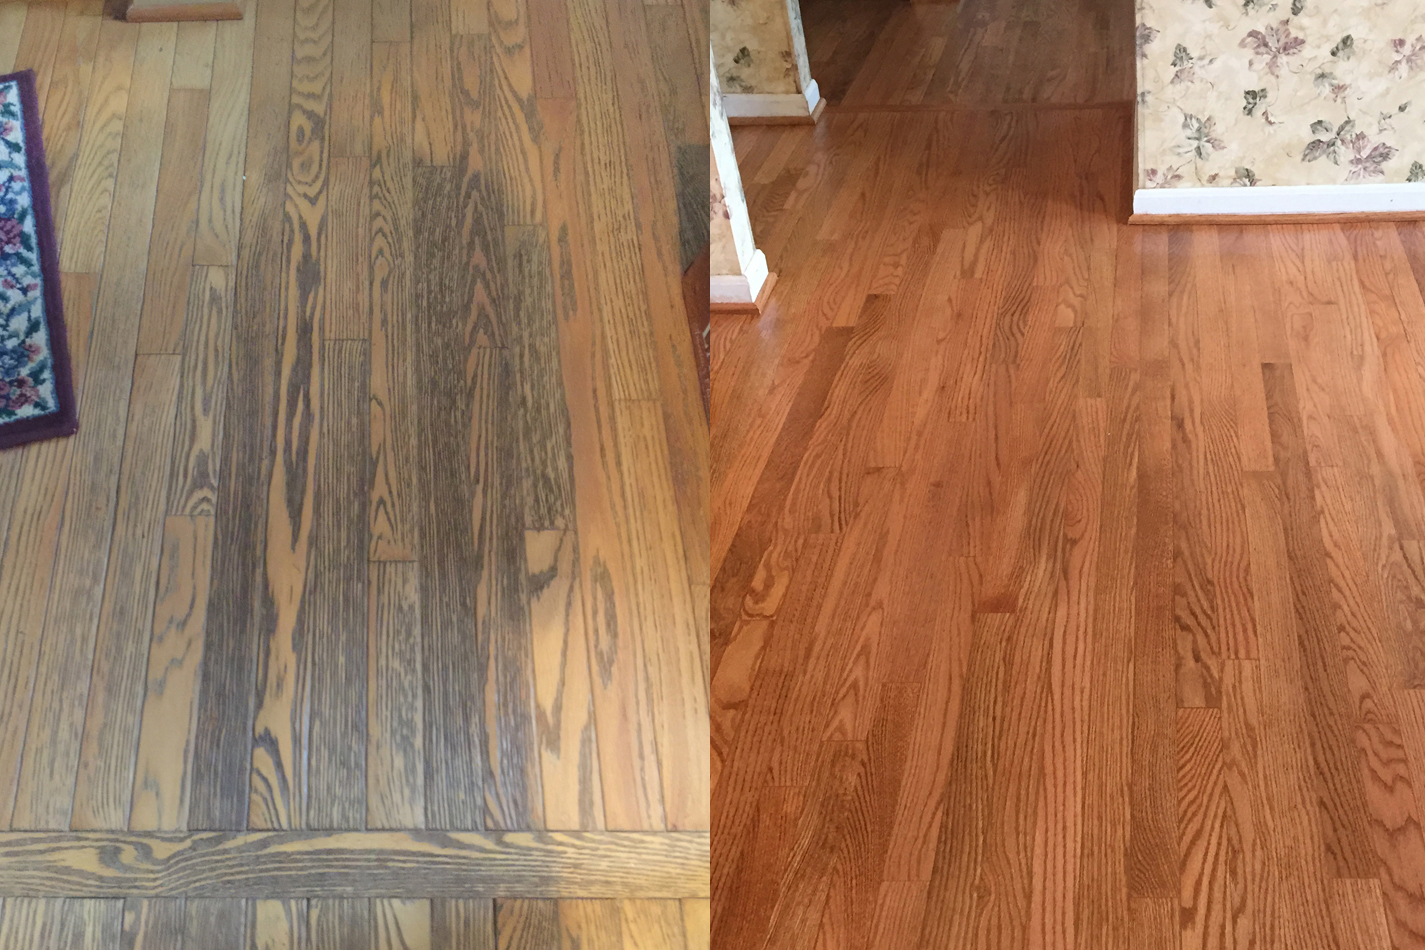 Hardwood Floor Refinishing Service Gainesville VA